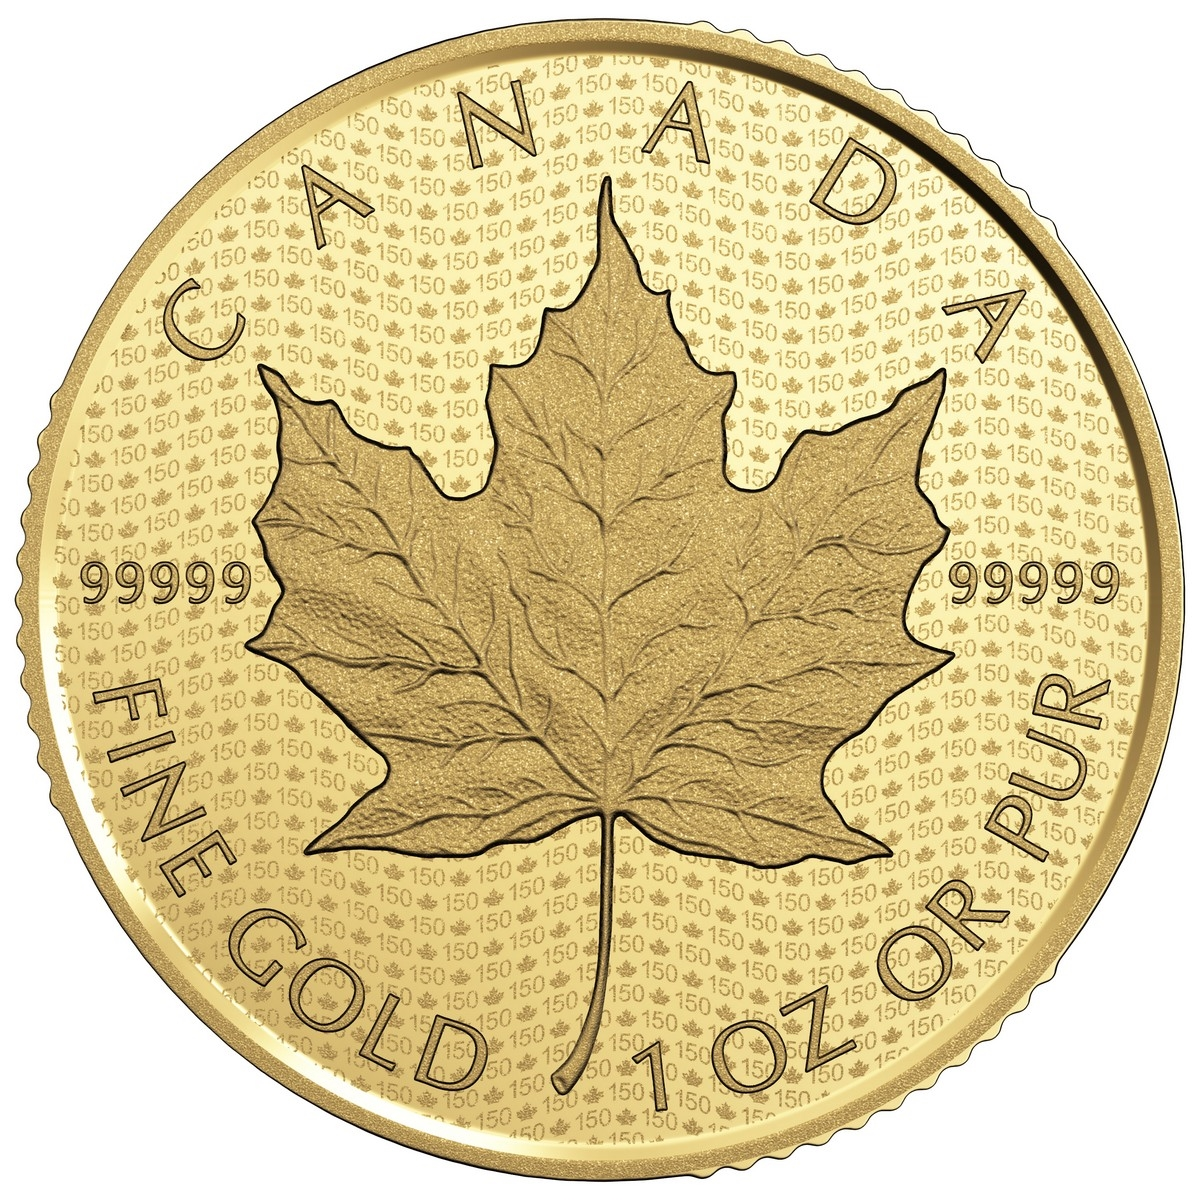 2017 200 Canada 150 Iconic Maple Leaf Pure Gold Coin